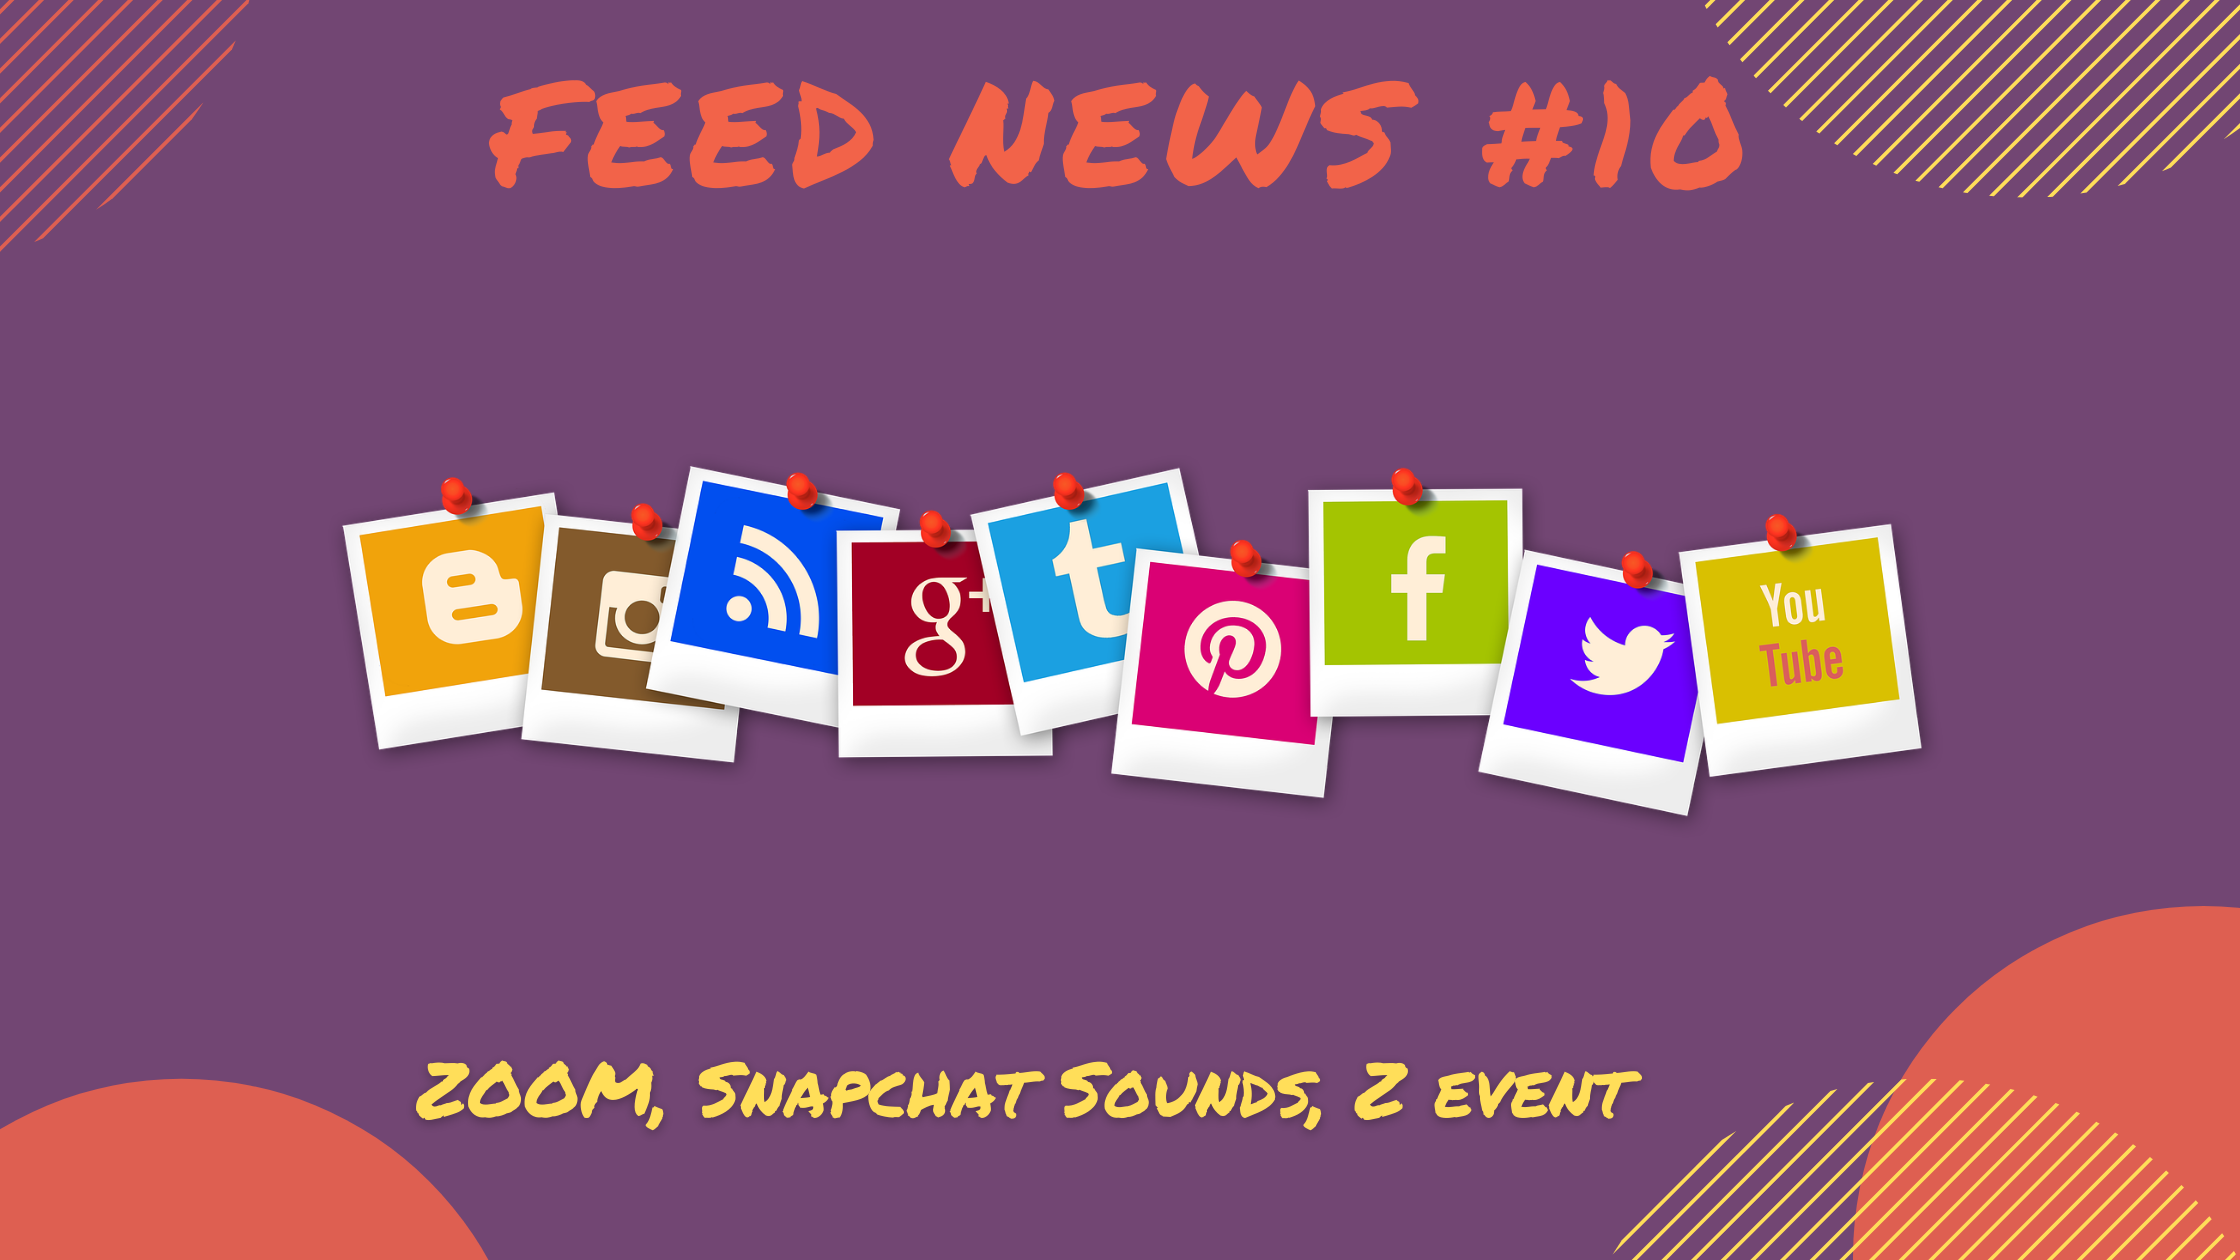 Feed News #10 Octobre : Zoom, Snapchat, Z Event